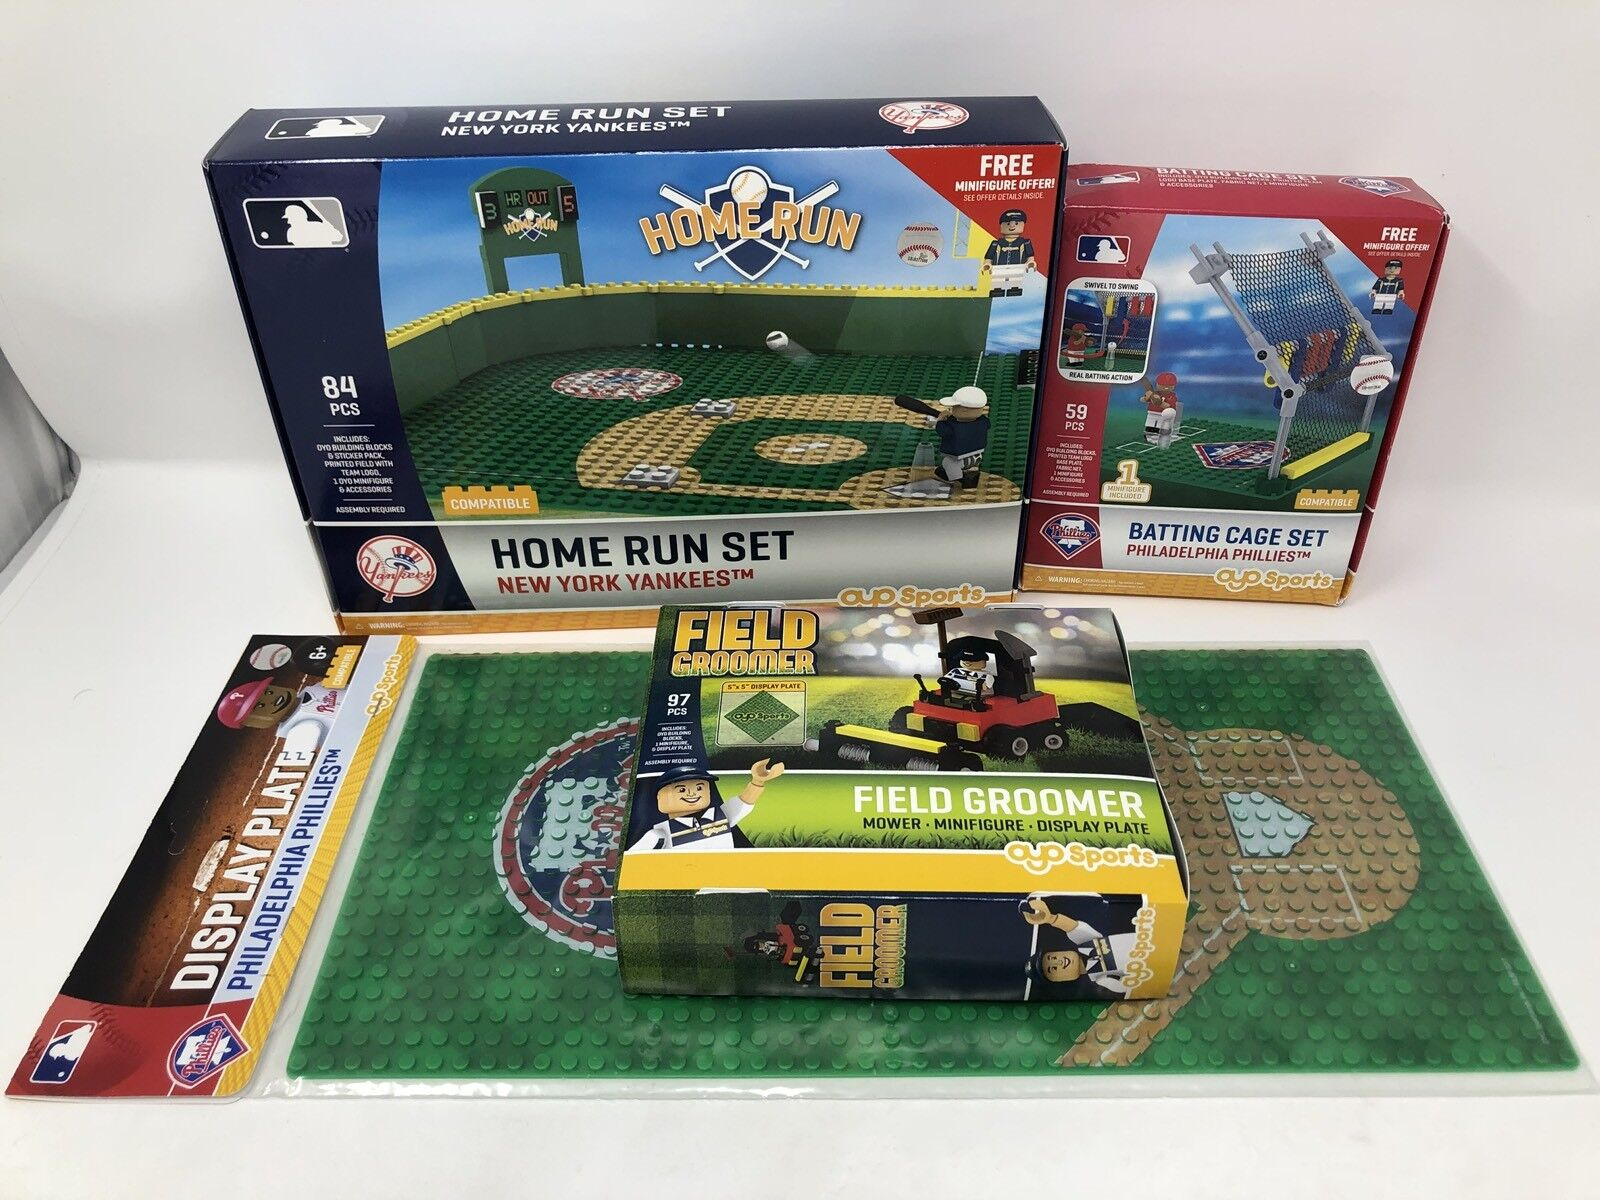 NEW YORK YORK YORK YANKEES HOME RUN Vs Phillies Batting Cage MINIFIG Display Plate Field 850722